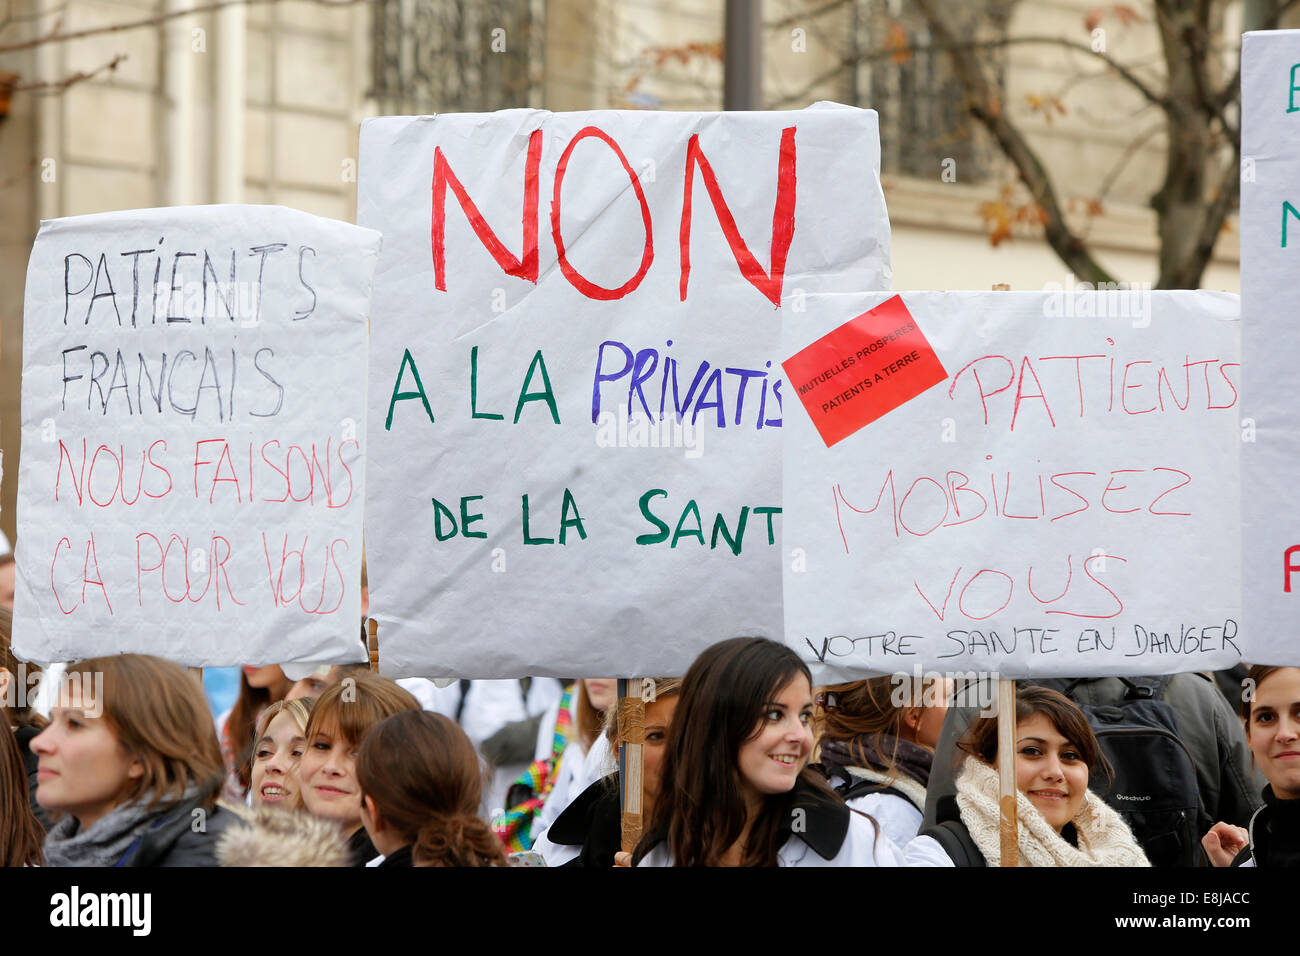 Demonstration against health insurance companies. - Stock Image